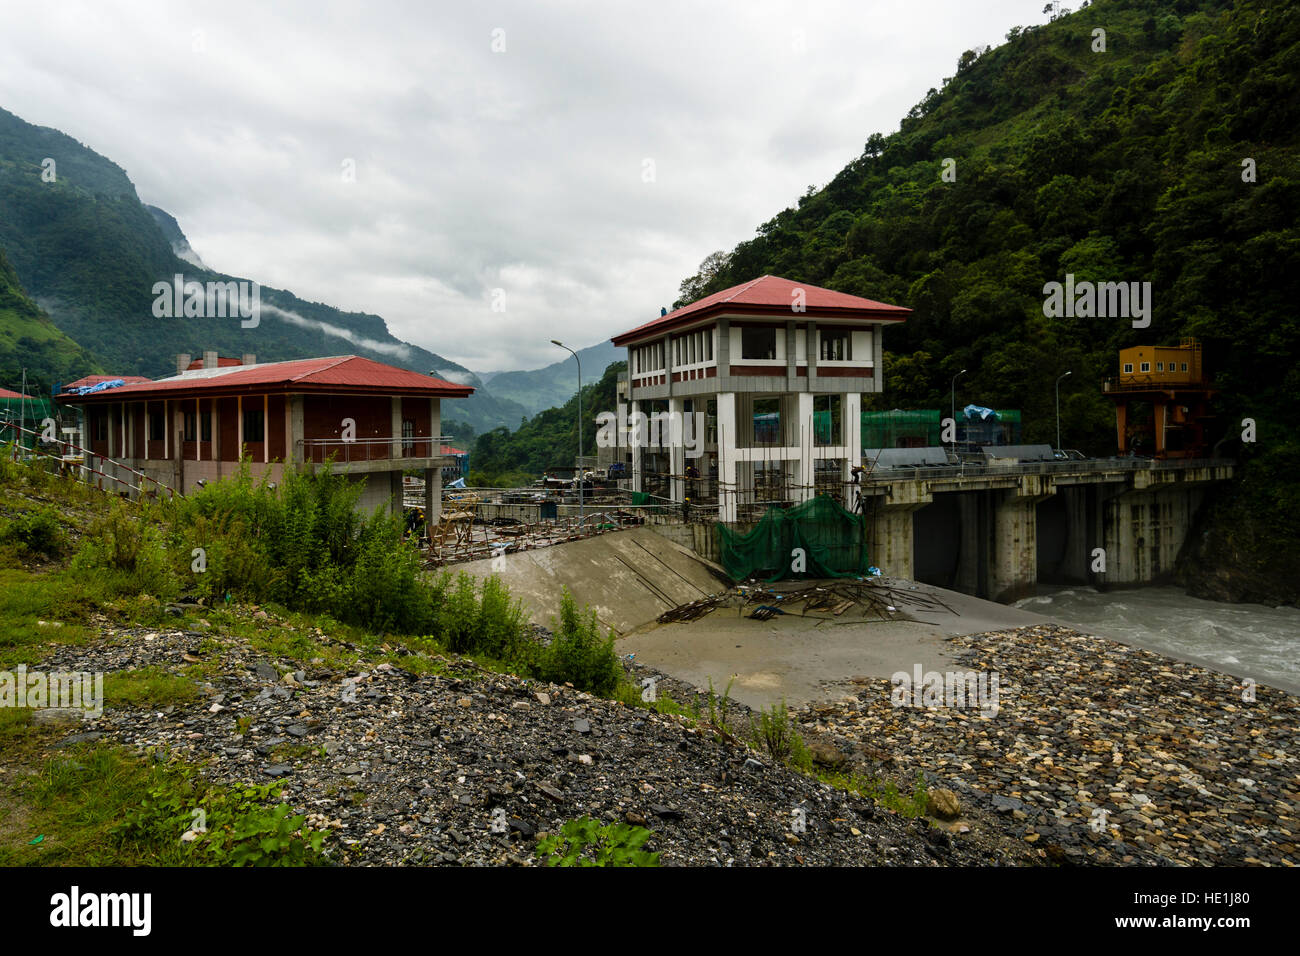 The future chinese Upper Marsyangdi hydroelectric powerplant project at the stage of construction - Stock Image